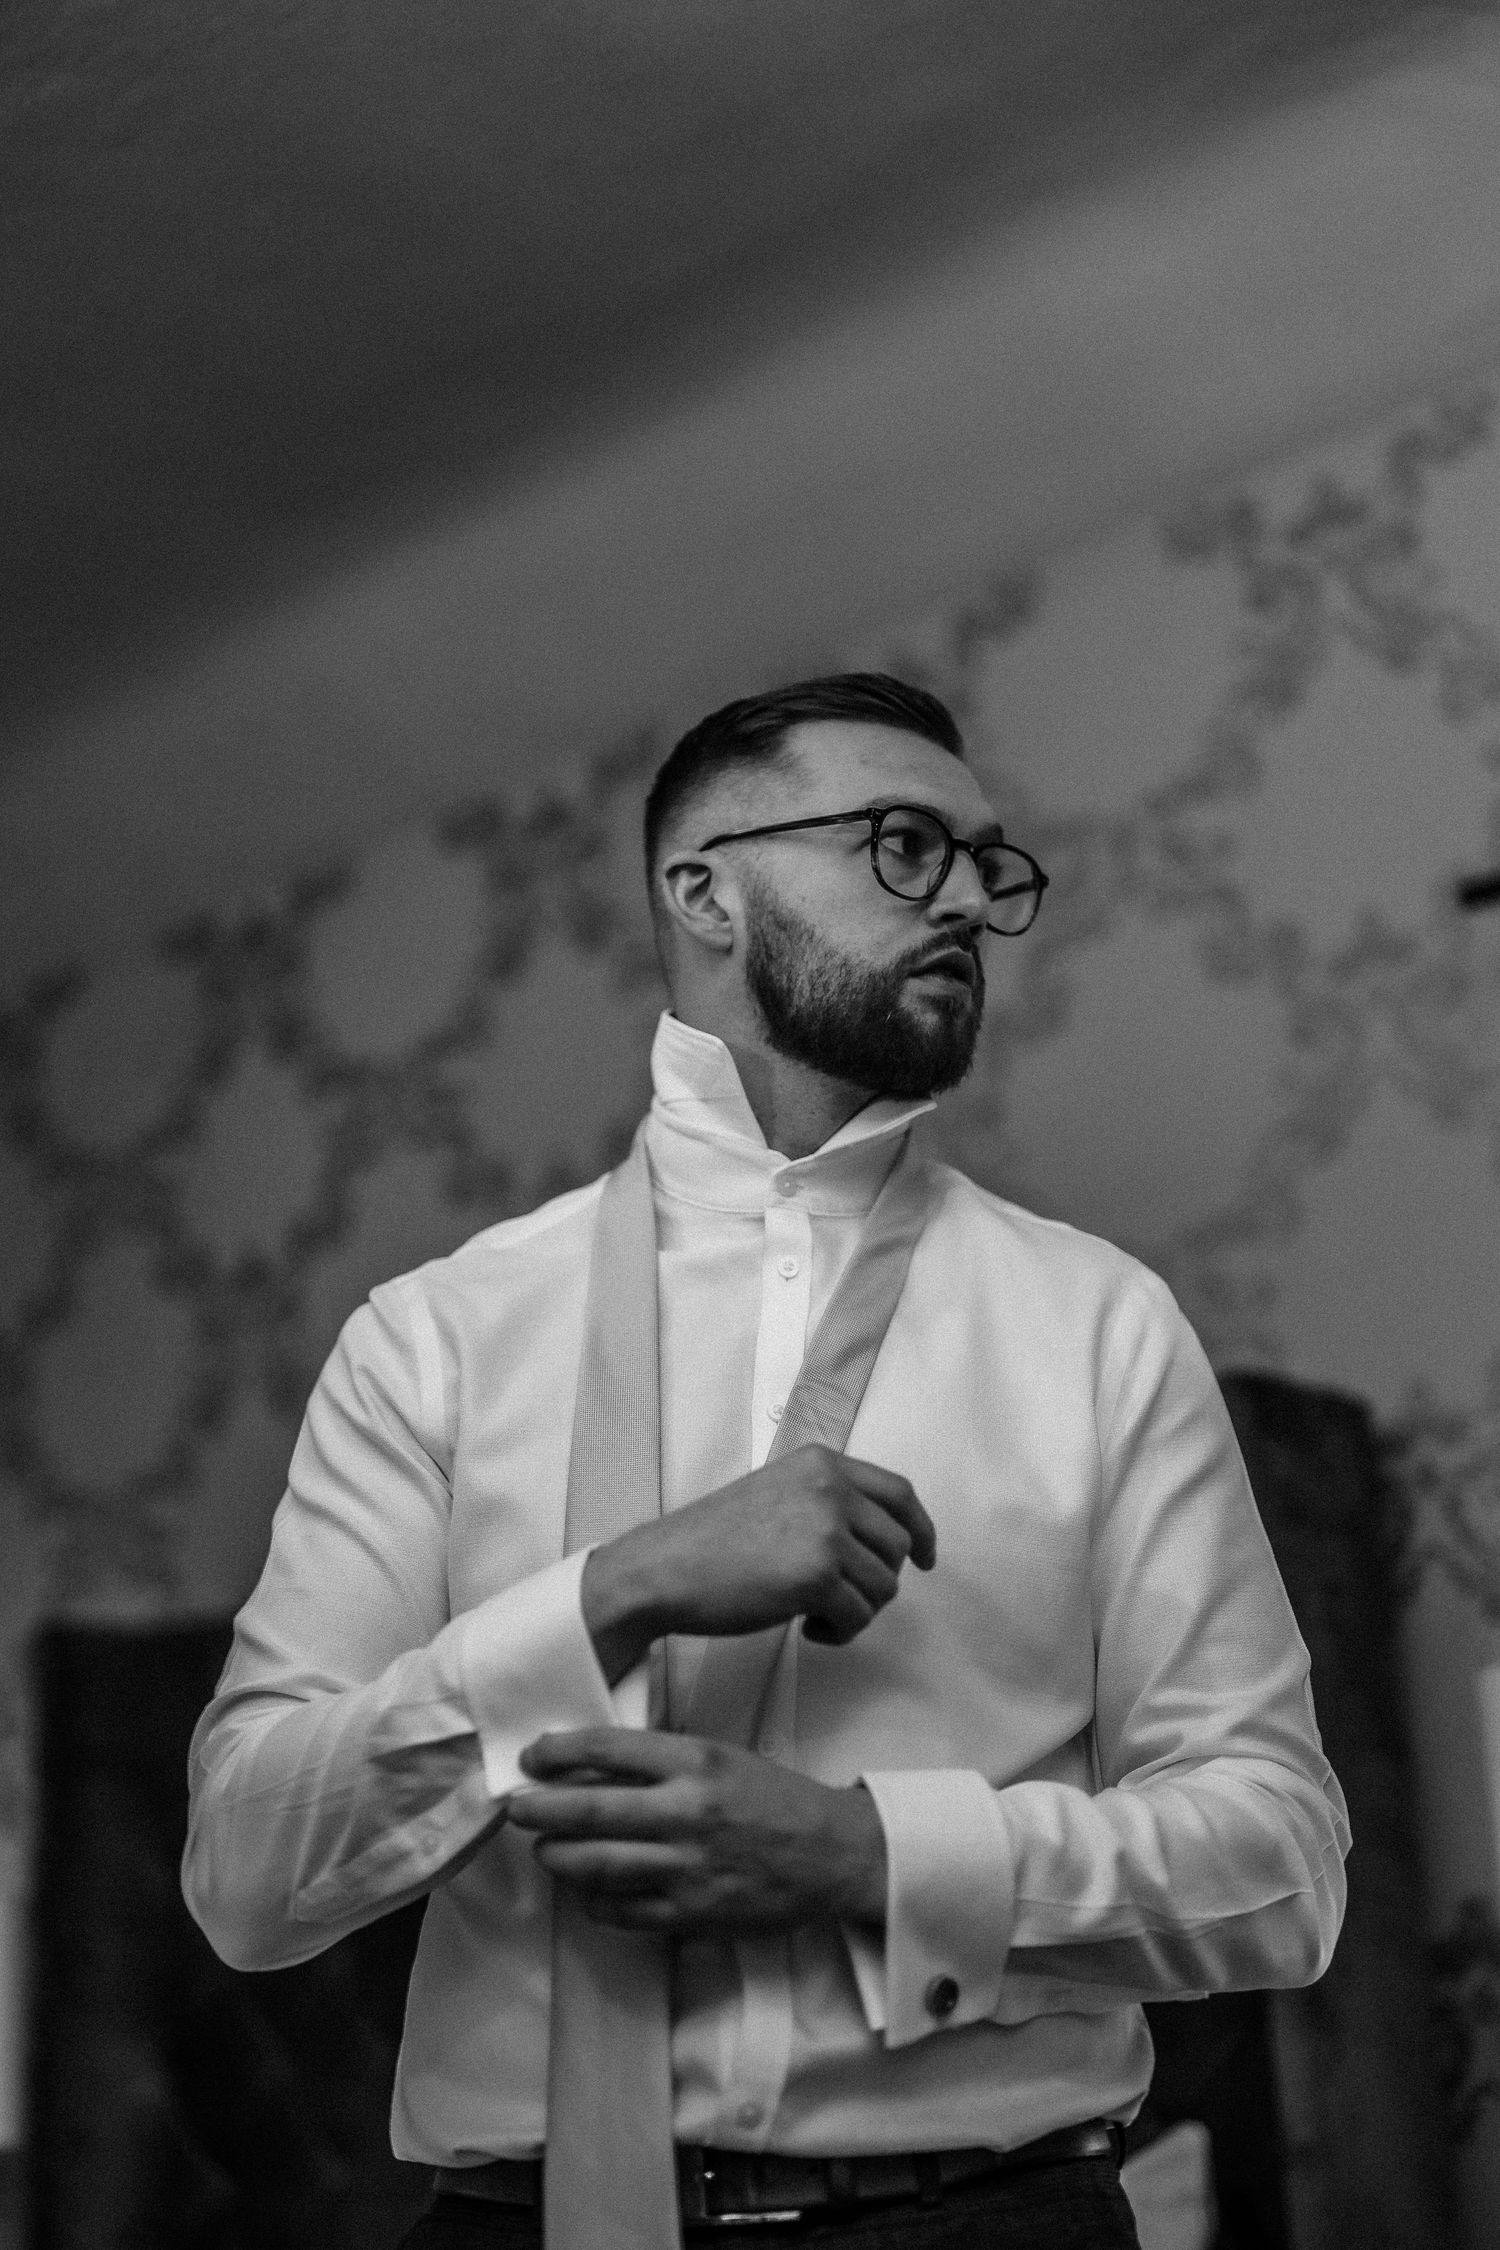 Black and white photo of groom getting ready at wedding in Wales